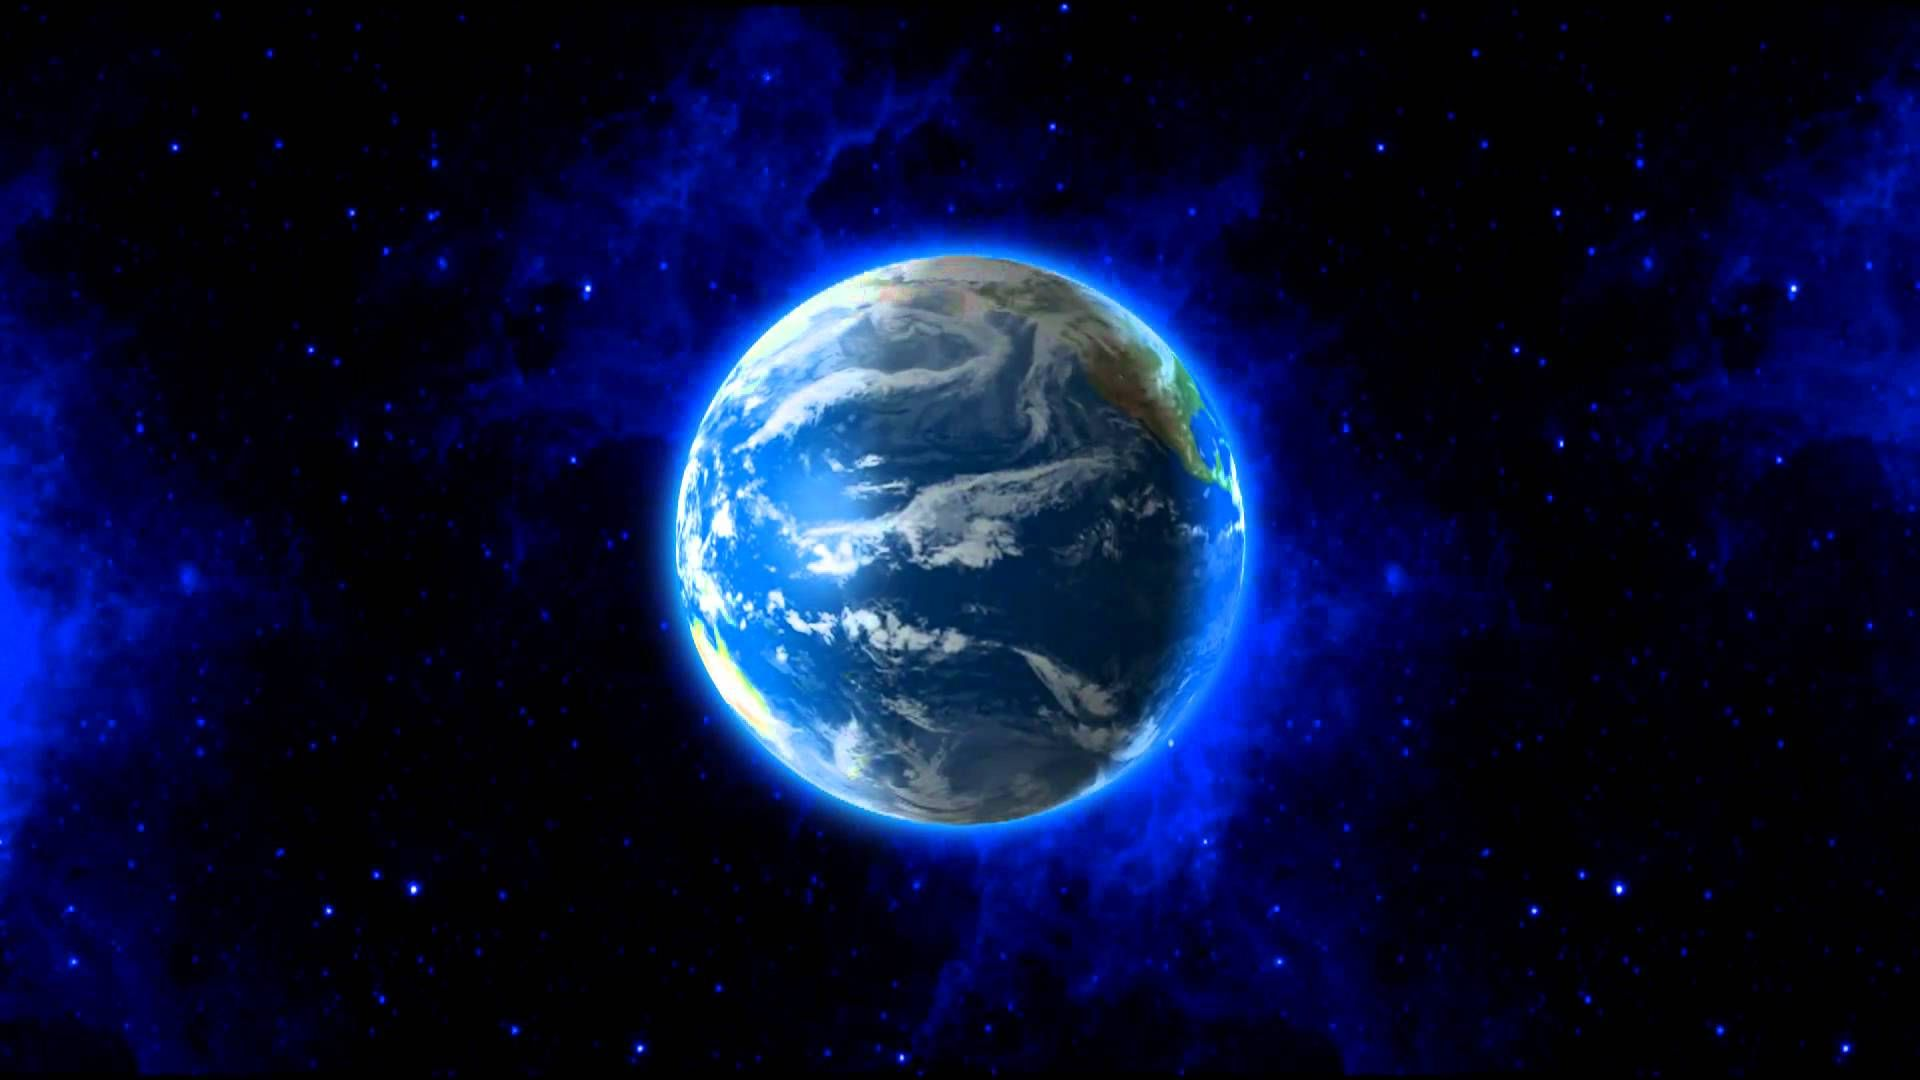 wallpaper a· love earth have it rotate on your windows desktop